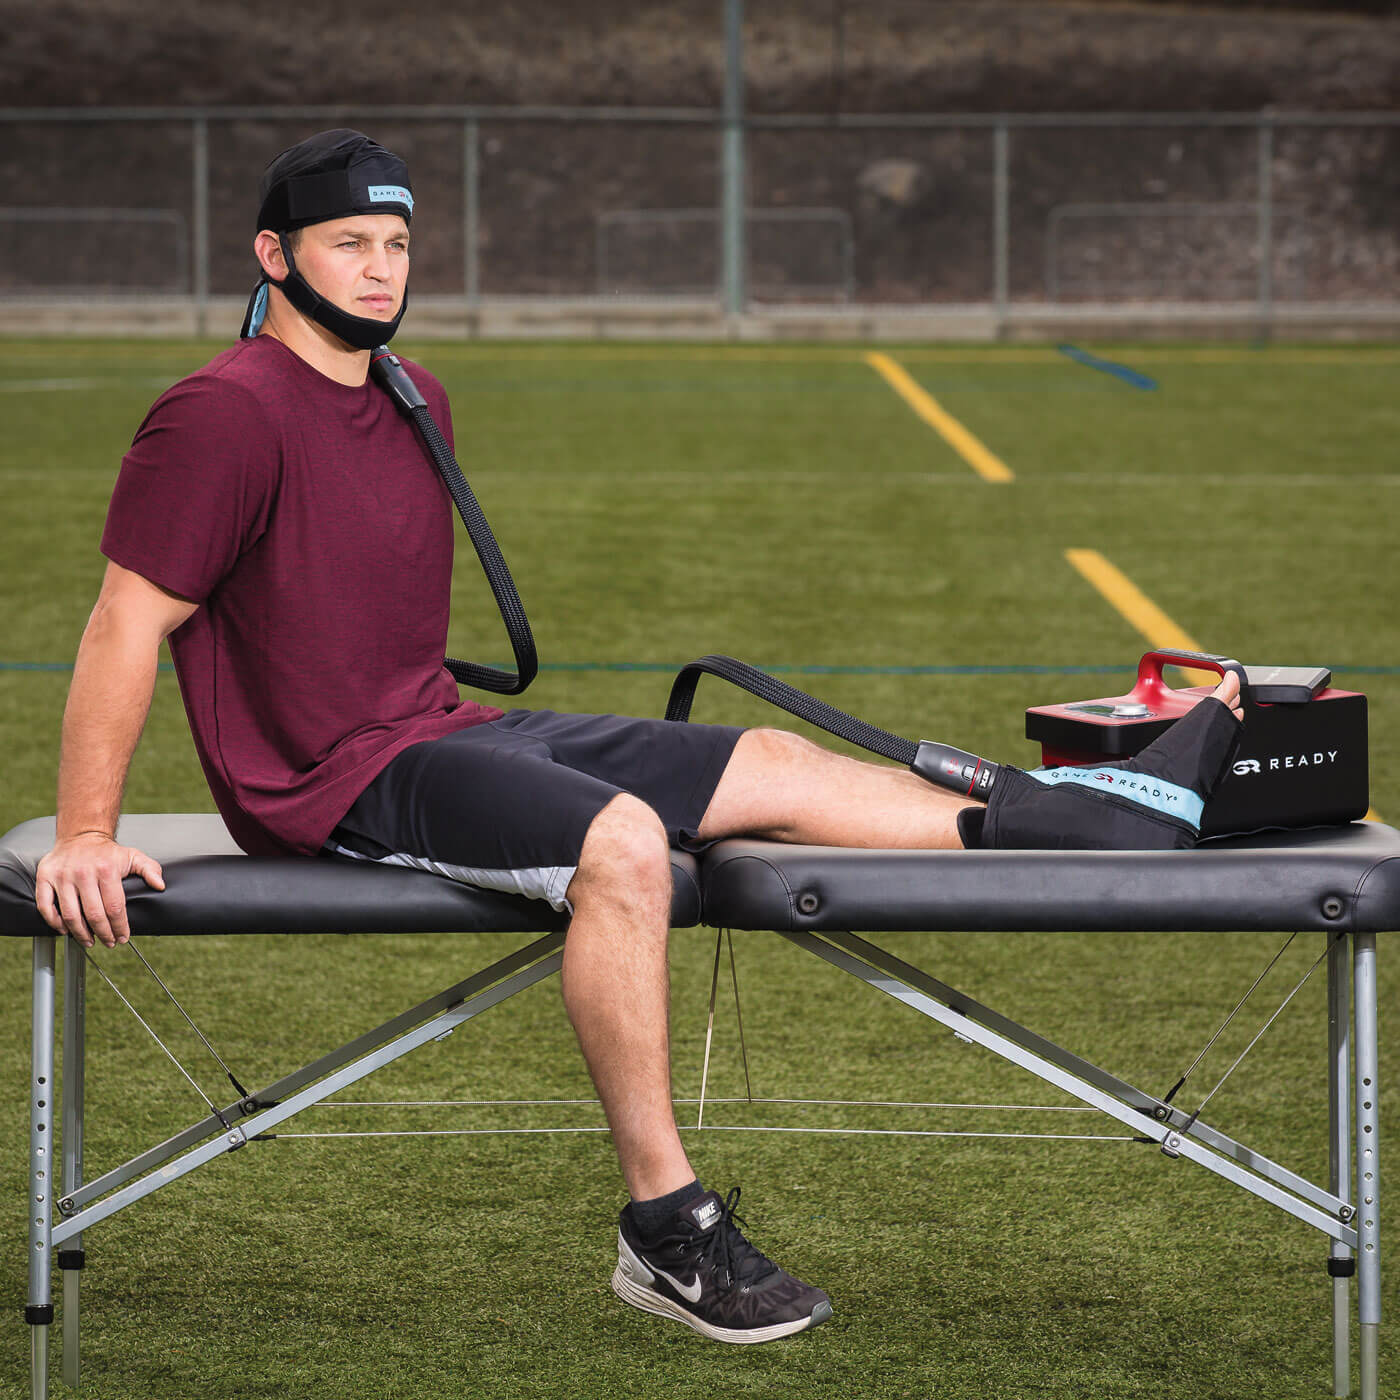 GRPro® 2 1 Cold Therapy Unit | Cryotherapy Unit for Athlete